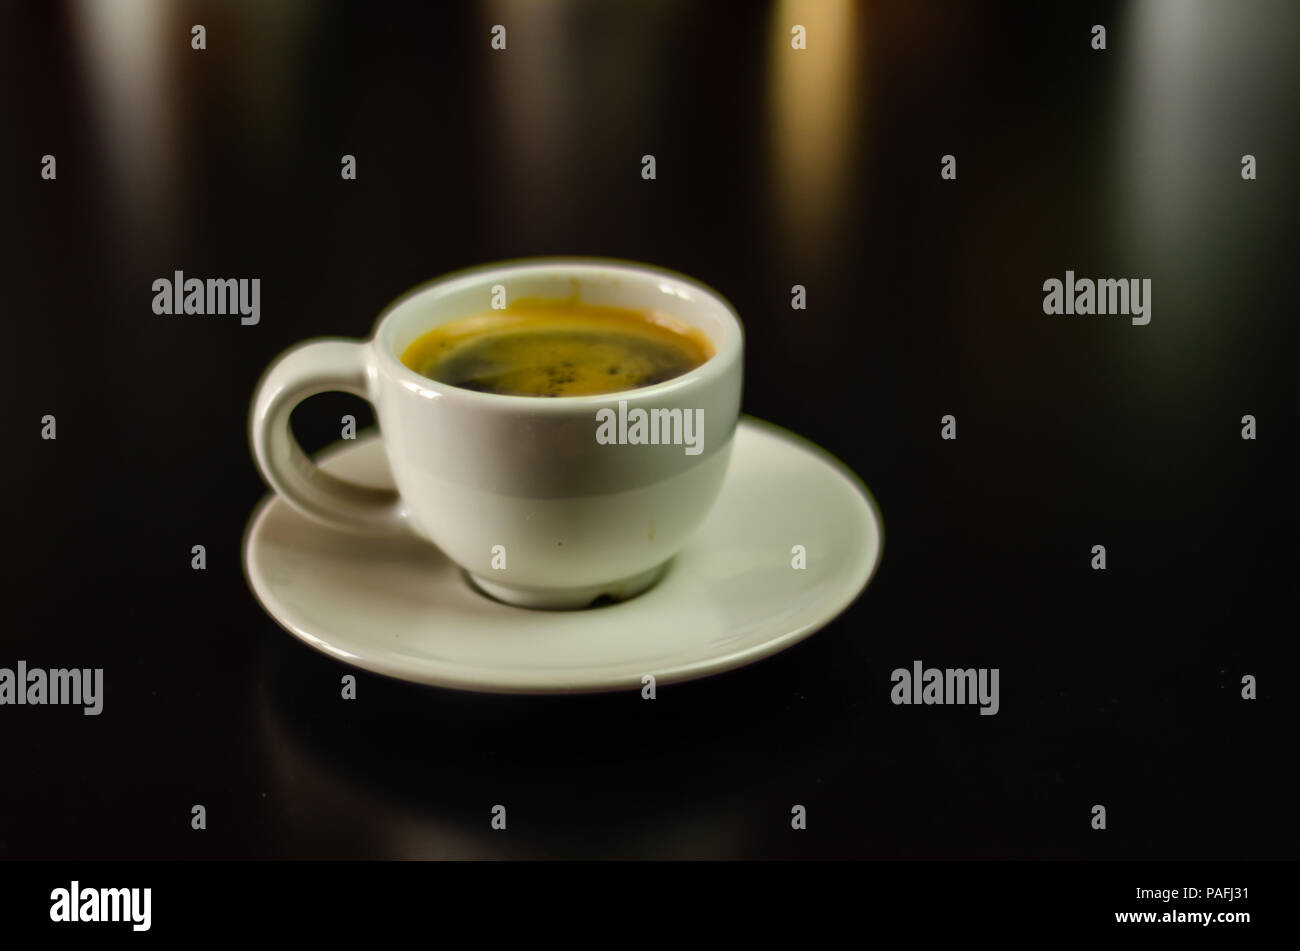 black coffee in a ceramic cup on the bar, energy drink in a public place, cafe - Stock Image